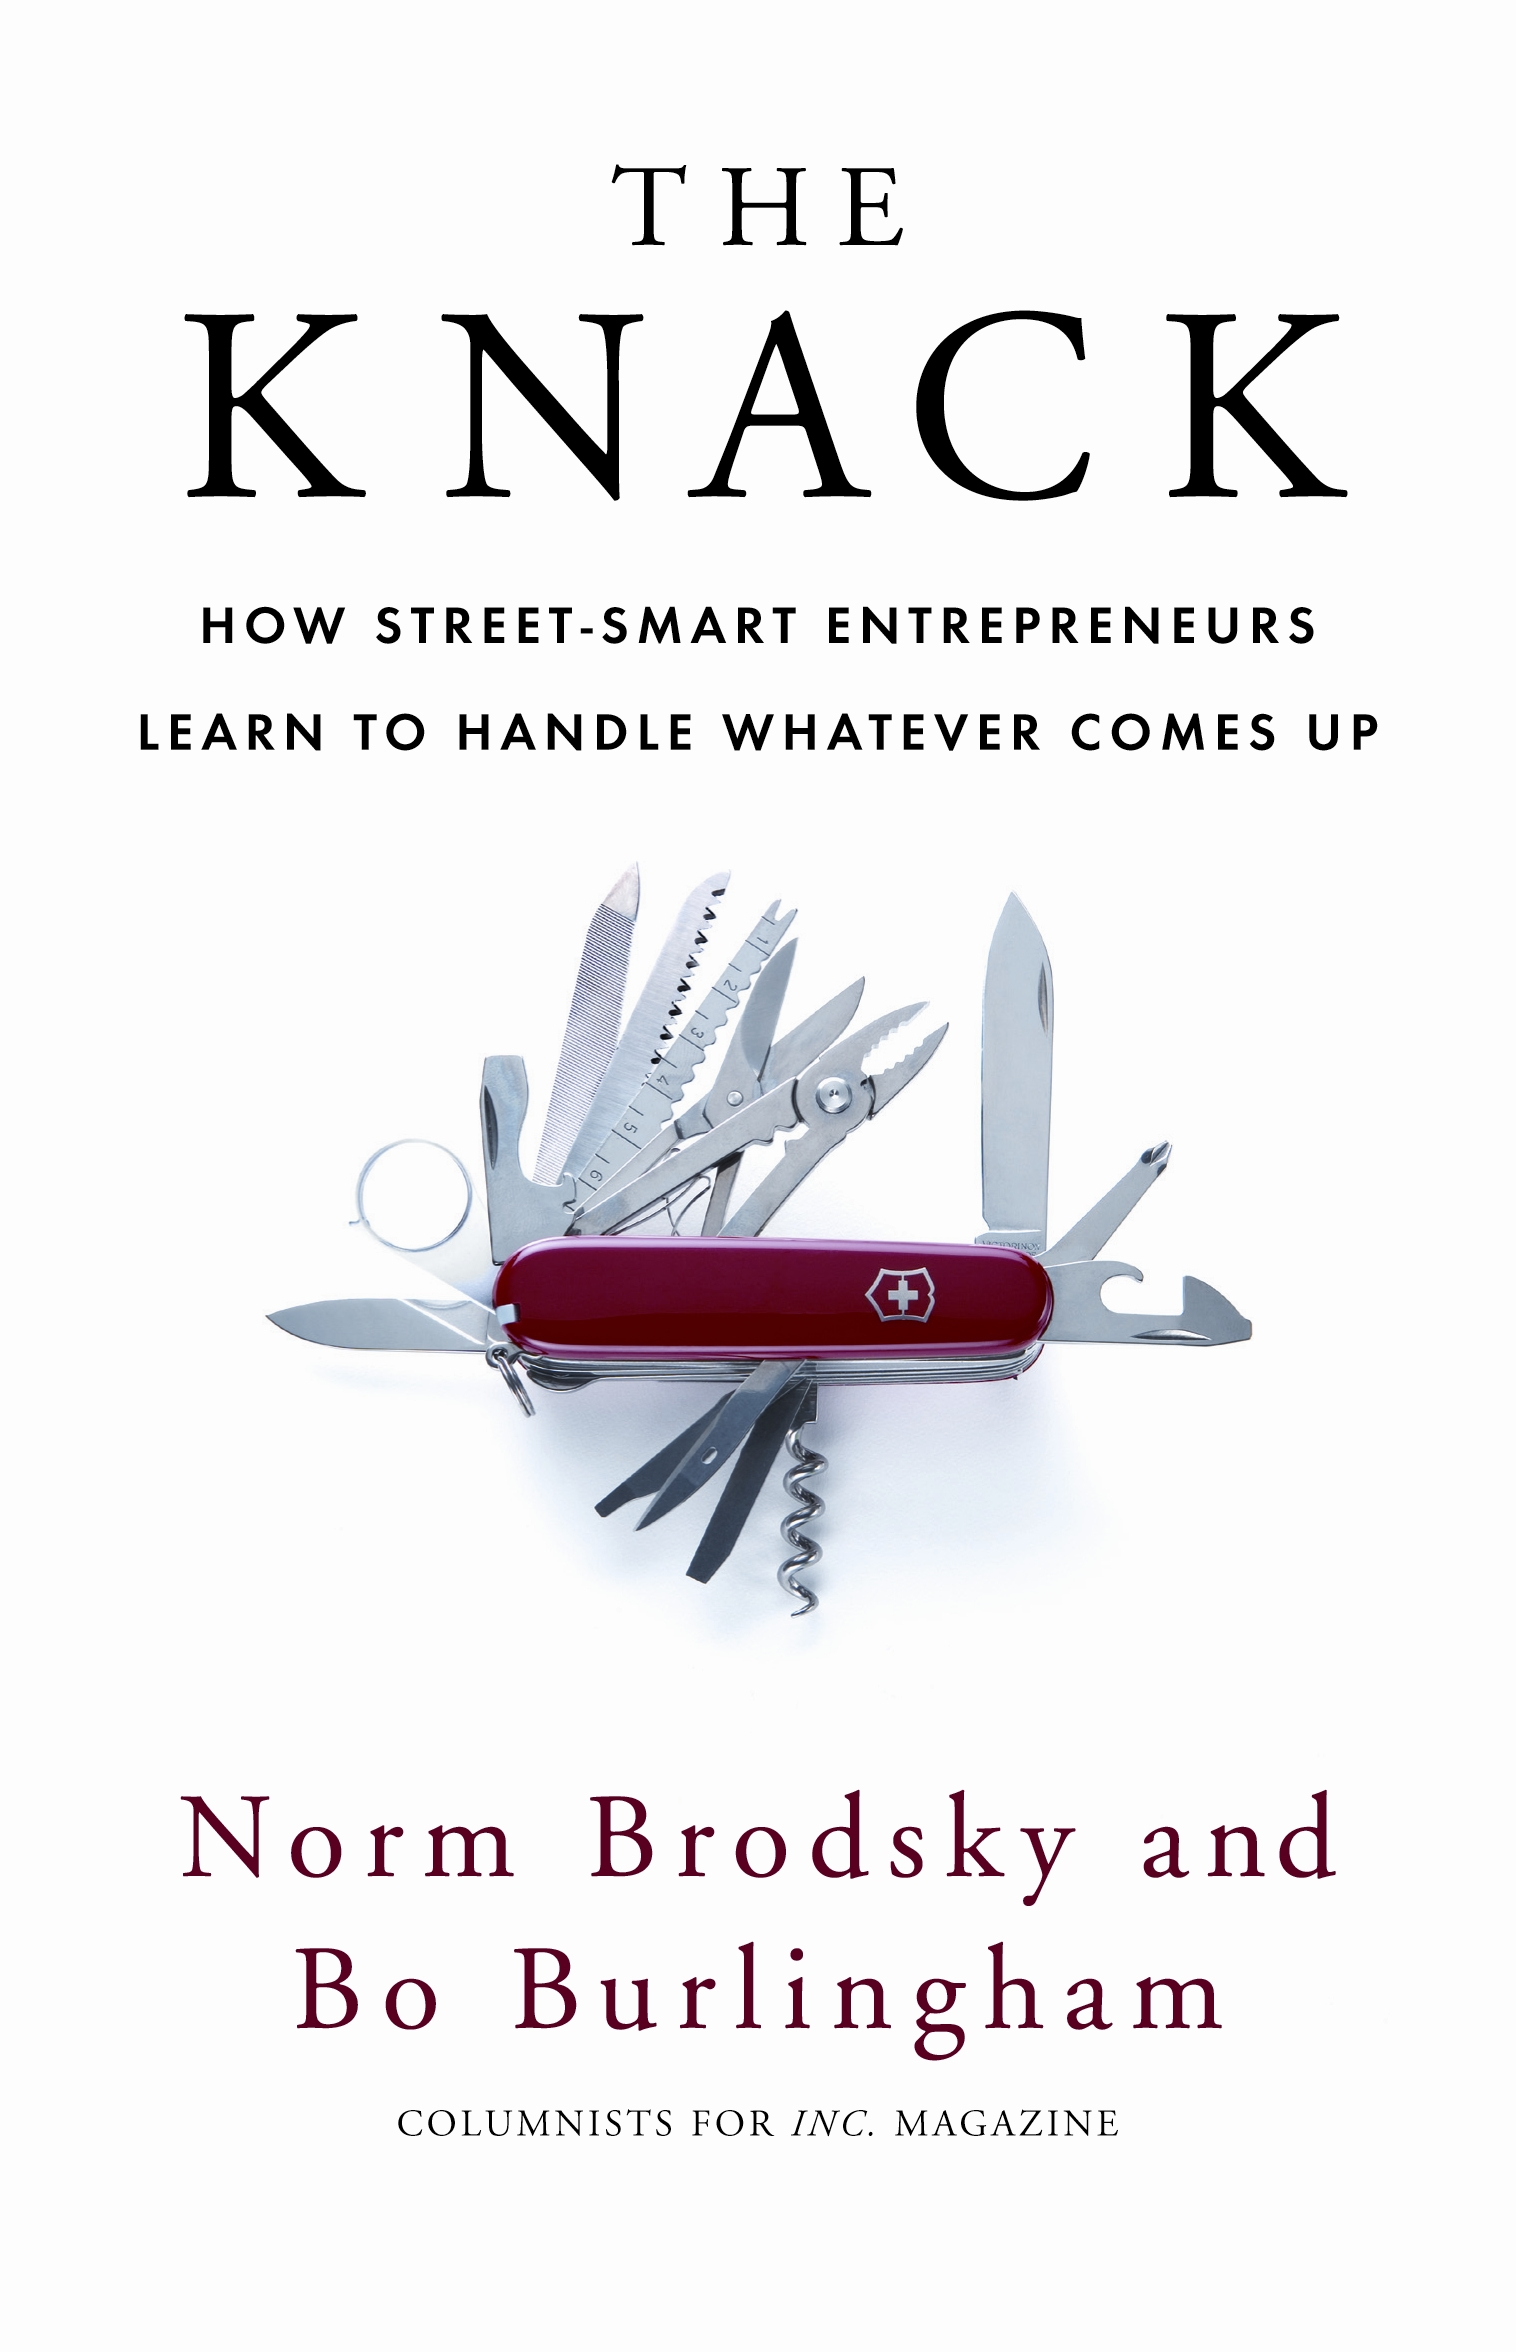 The Knack How Street-Smart Entrepreneurs Learn to Handle Whatever Comes Up